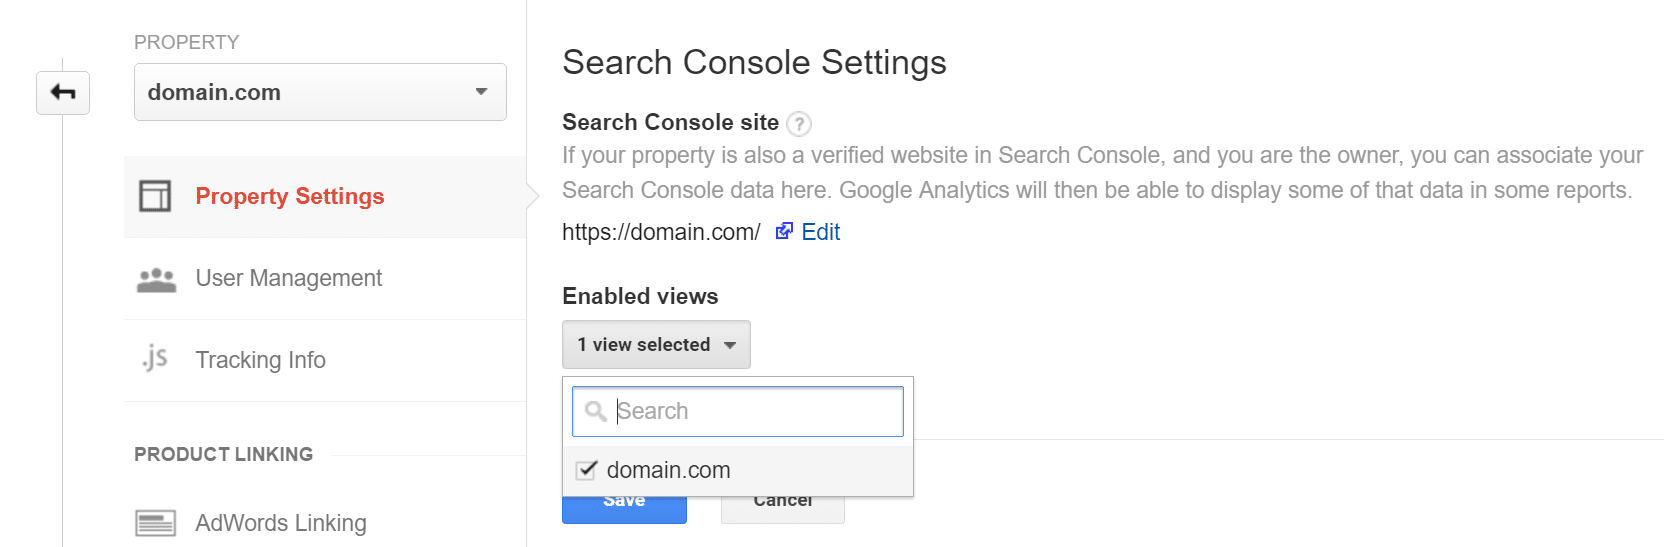 Google AnalyticsをGSCにリンクする